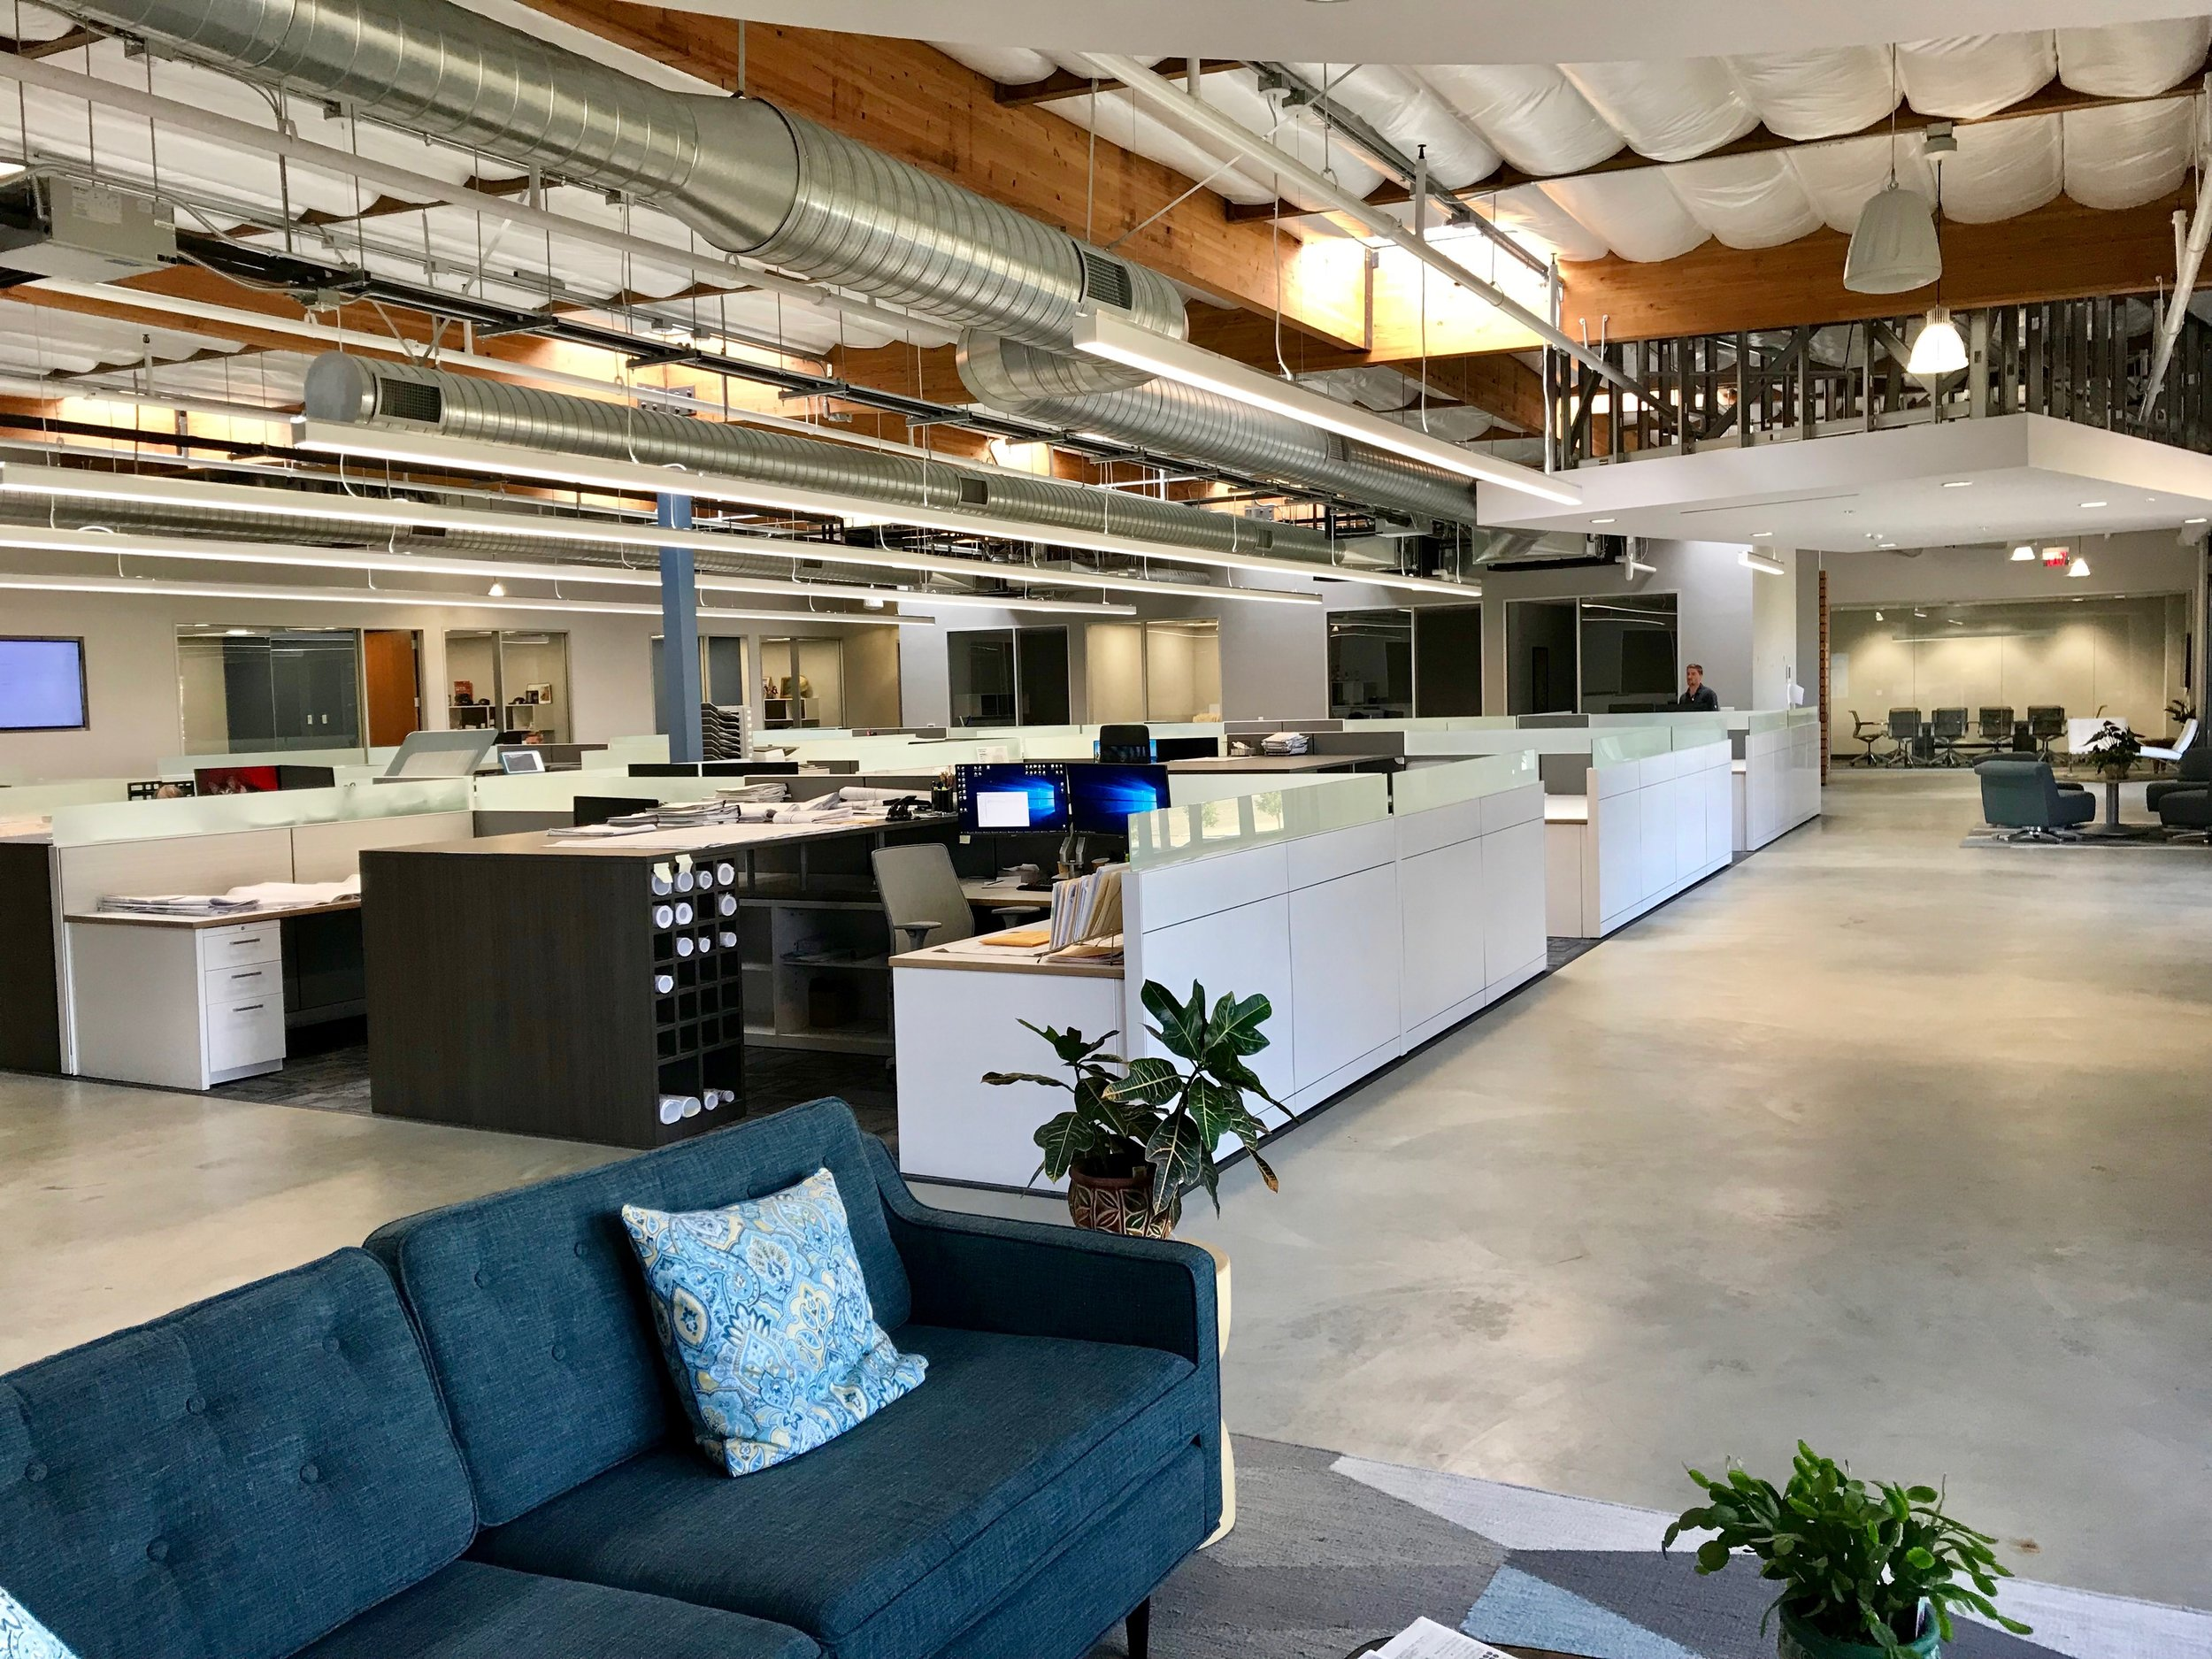 Our Workspace - Let's be honest, a great work environment goes along way when selecting a company to call home. Our newly renovated HQ office in Anaheim has 200,000+ SF of open floor plan work space - a great work flow for today's marketplace.